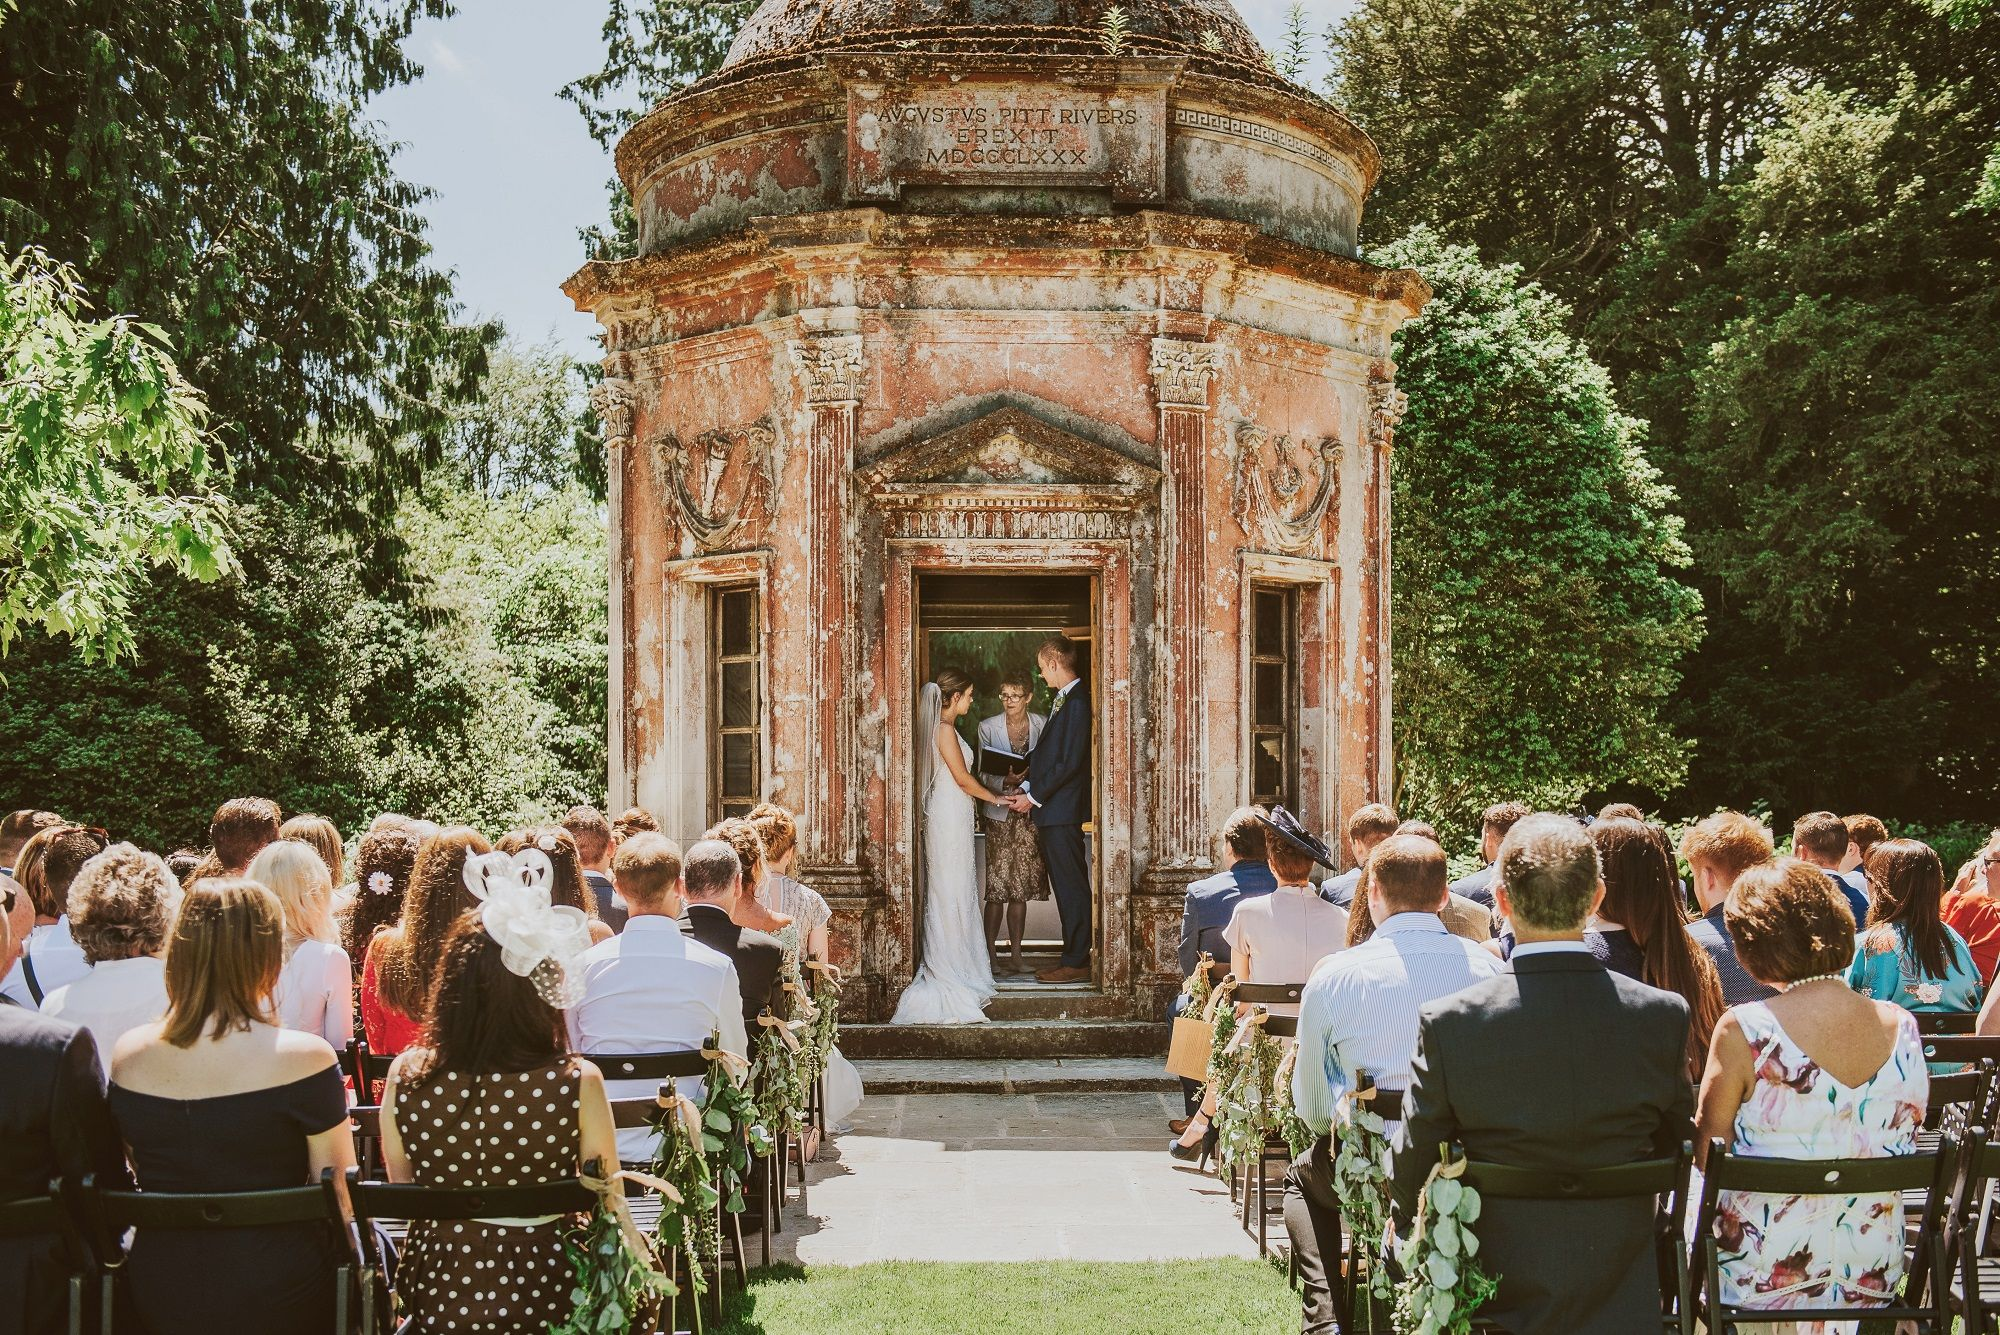 Outdoor Wedding Ceremonies: What the New Laws Could Mean for Your Wedding  Planning   Wedding venues uk, Venues uk, Outdoor wedding venues